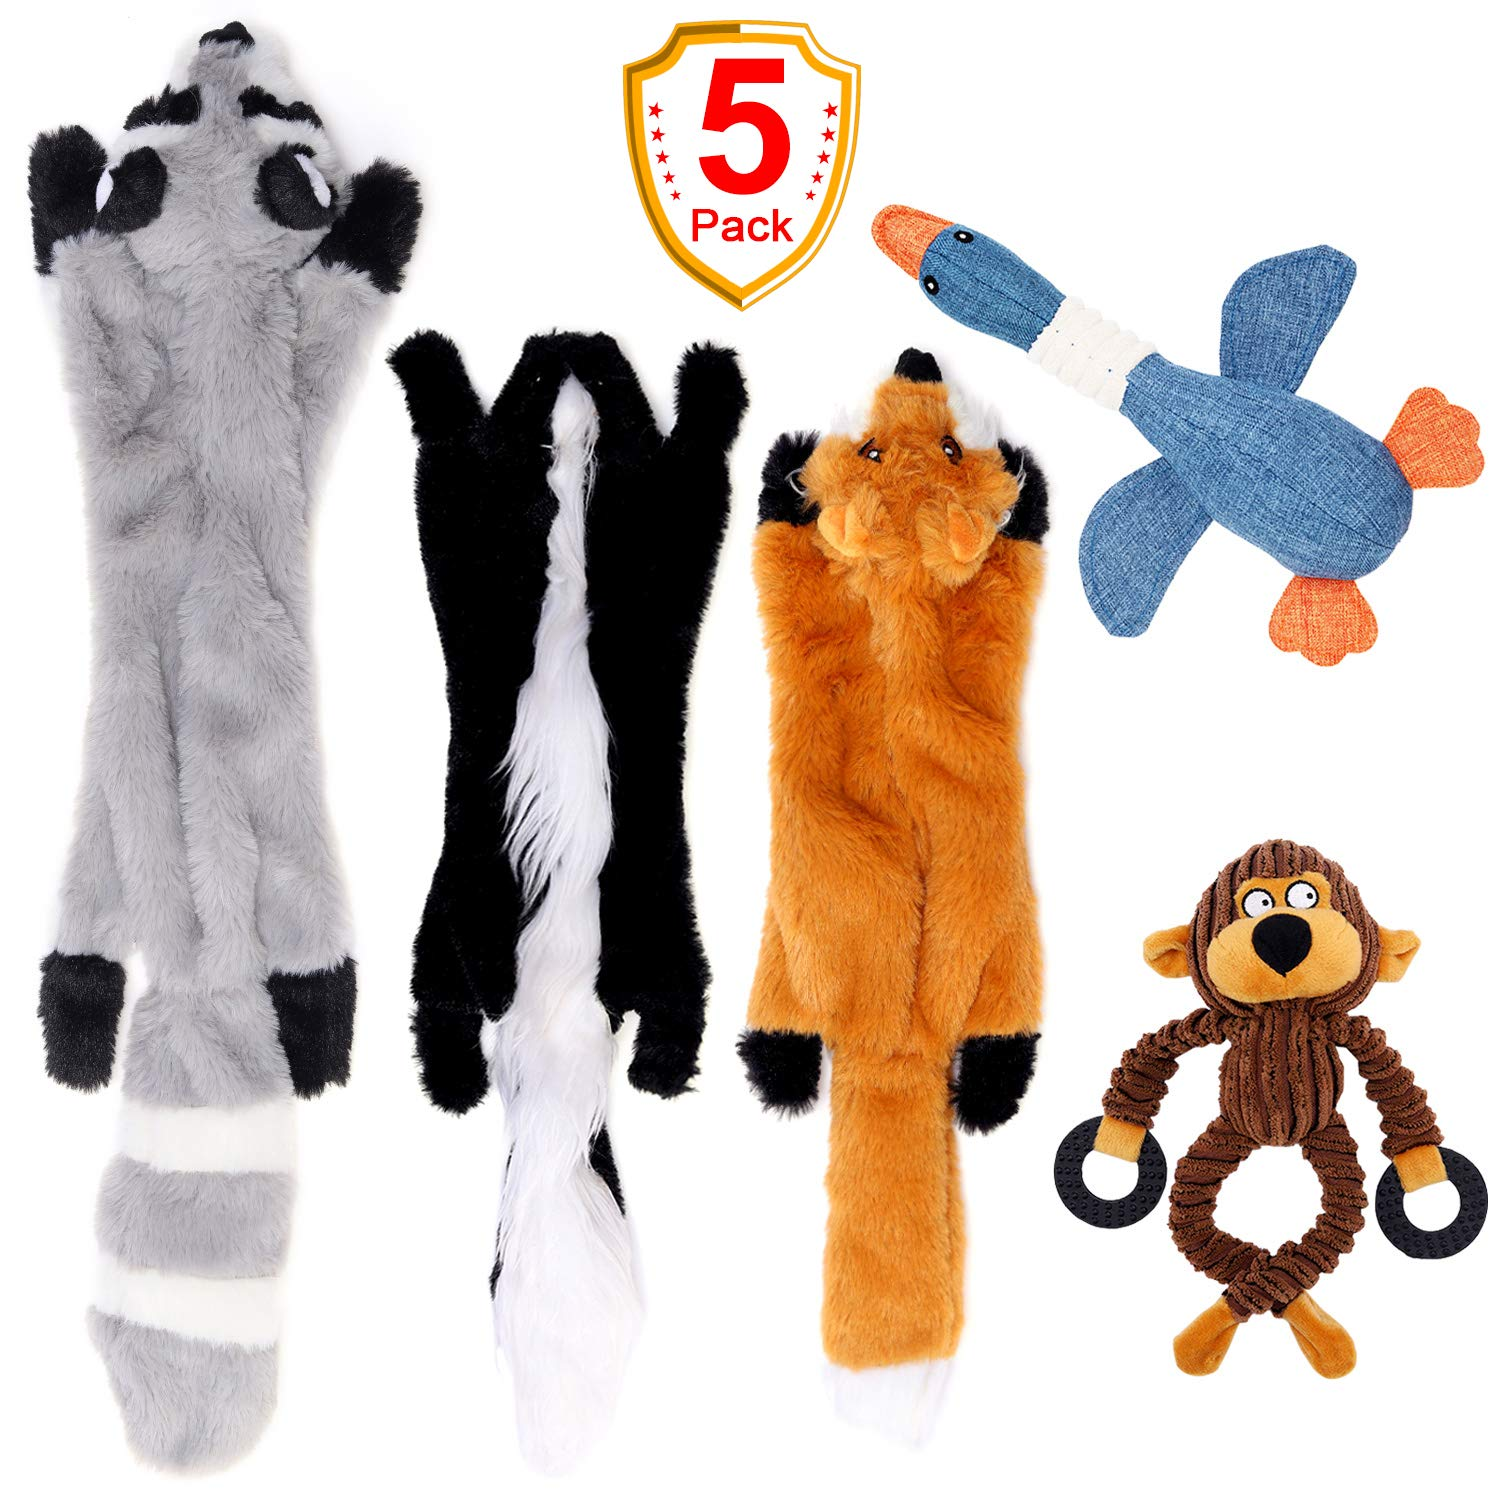 2d55fb87c0a1 LOVEKONG Stuffingless Dog Toys, No Stuffing Dog Toys of Raccoon Fox and  Skunk, Plush